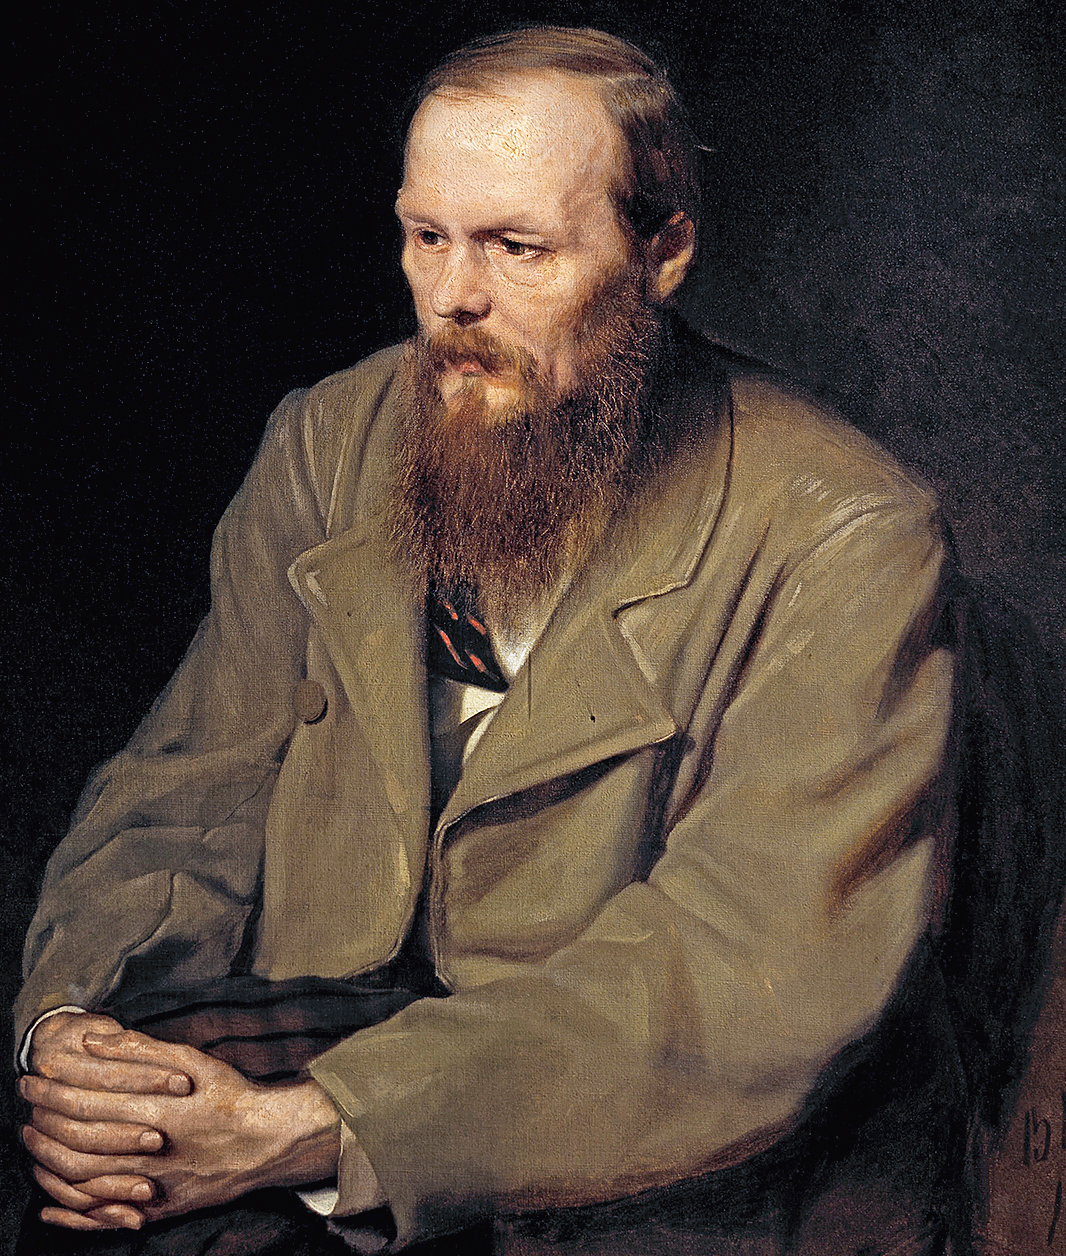 Portrait of Dostoyevsky by Vasily Perov, 1872